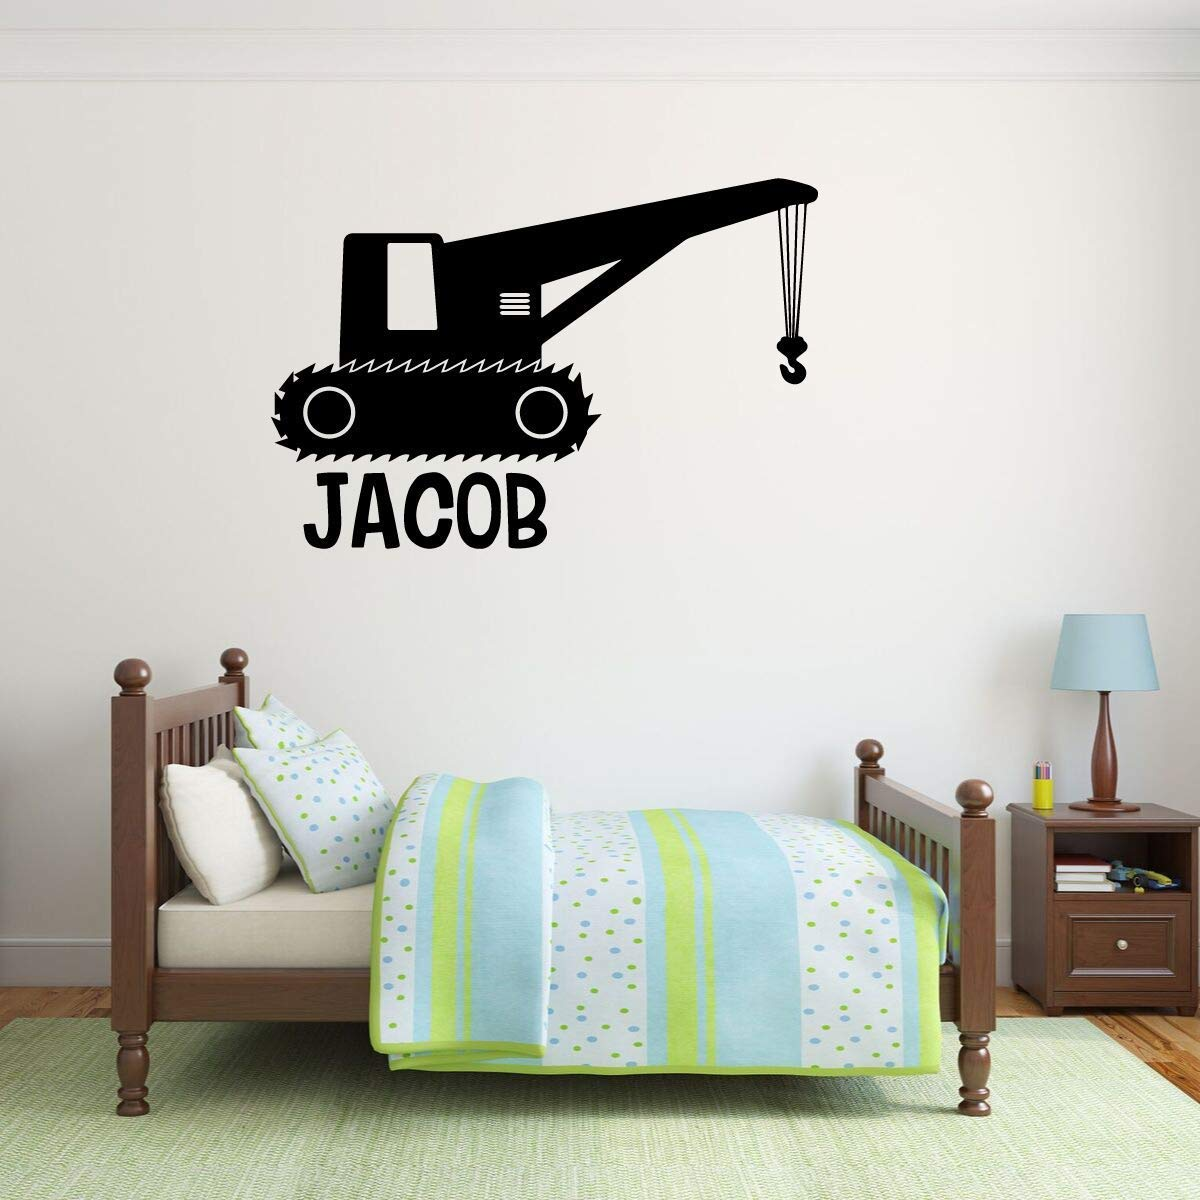 Personalized Boy Name Bedroom Decor Vinyl Decor Wall Decal ...